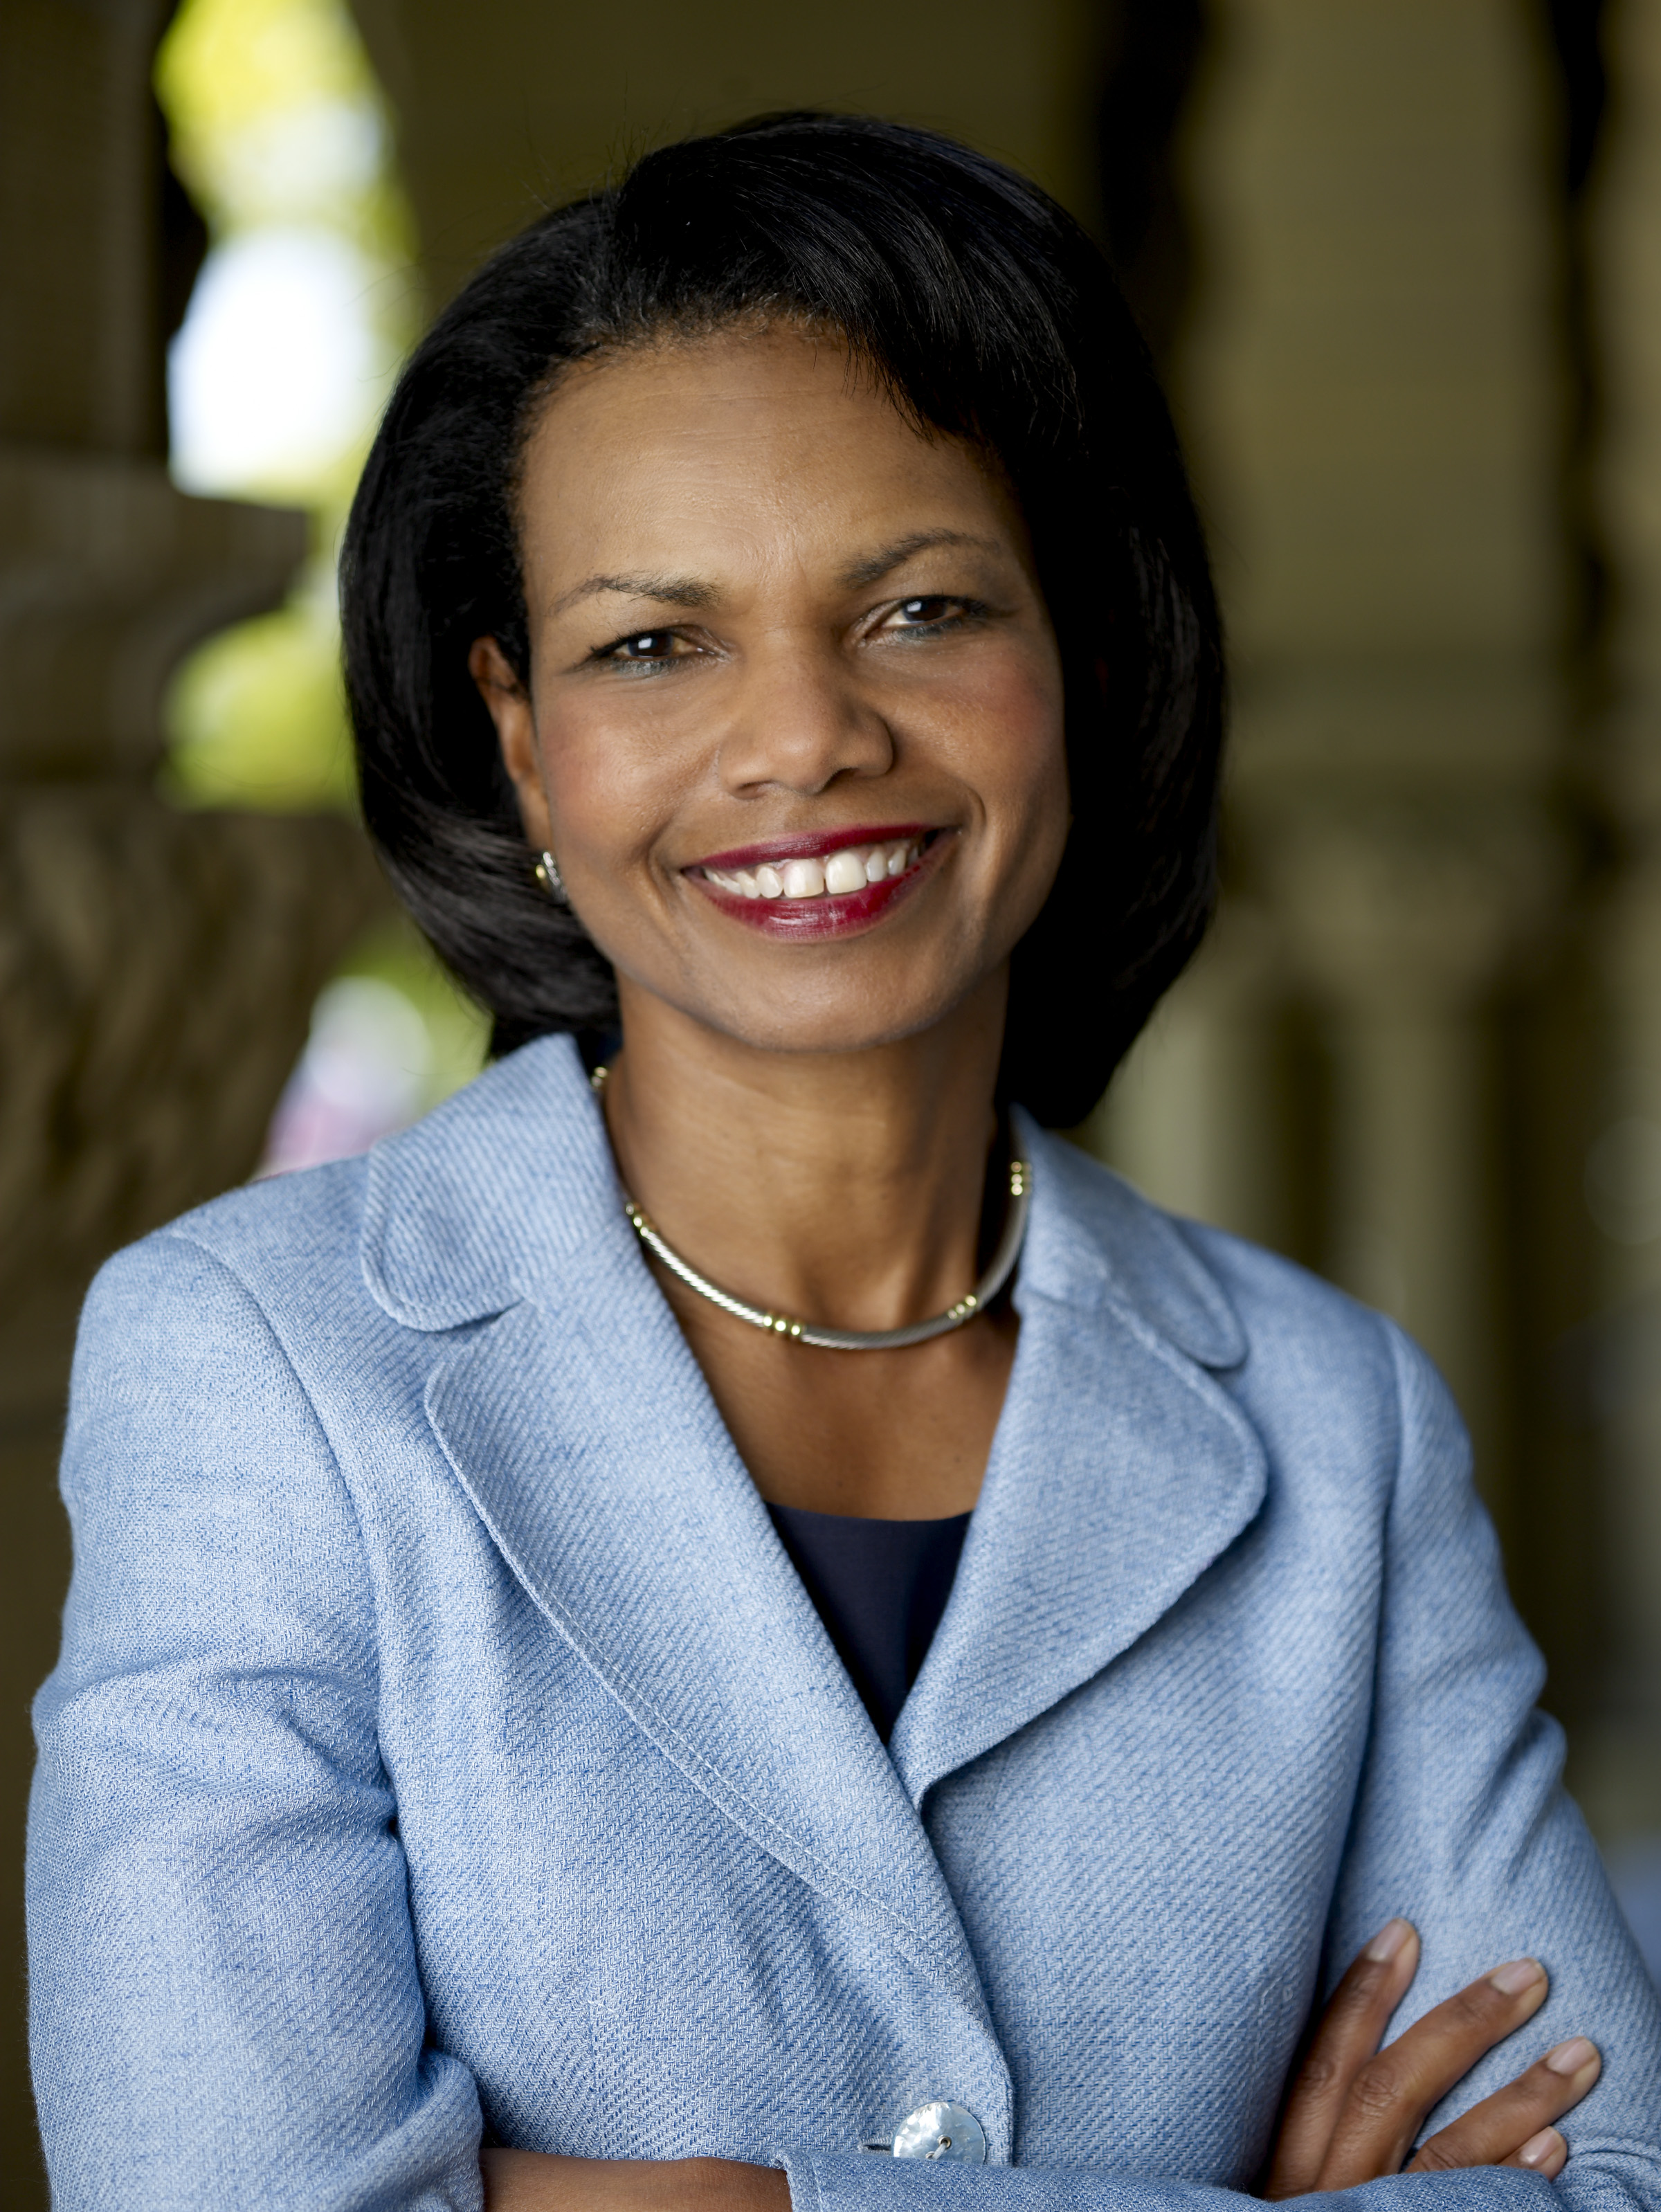 condoleezza rice phd thesis After graduating with a dissertation on military policy and politics in  how can  condoleezza rice (phd, university of denver) become a professor at stanford,.